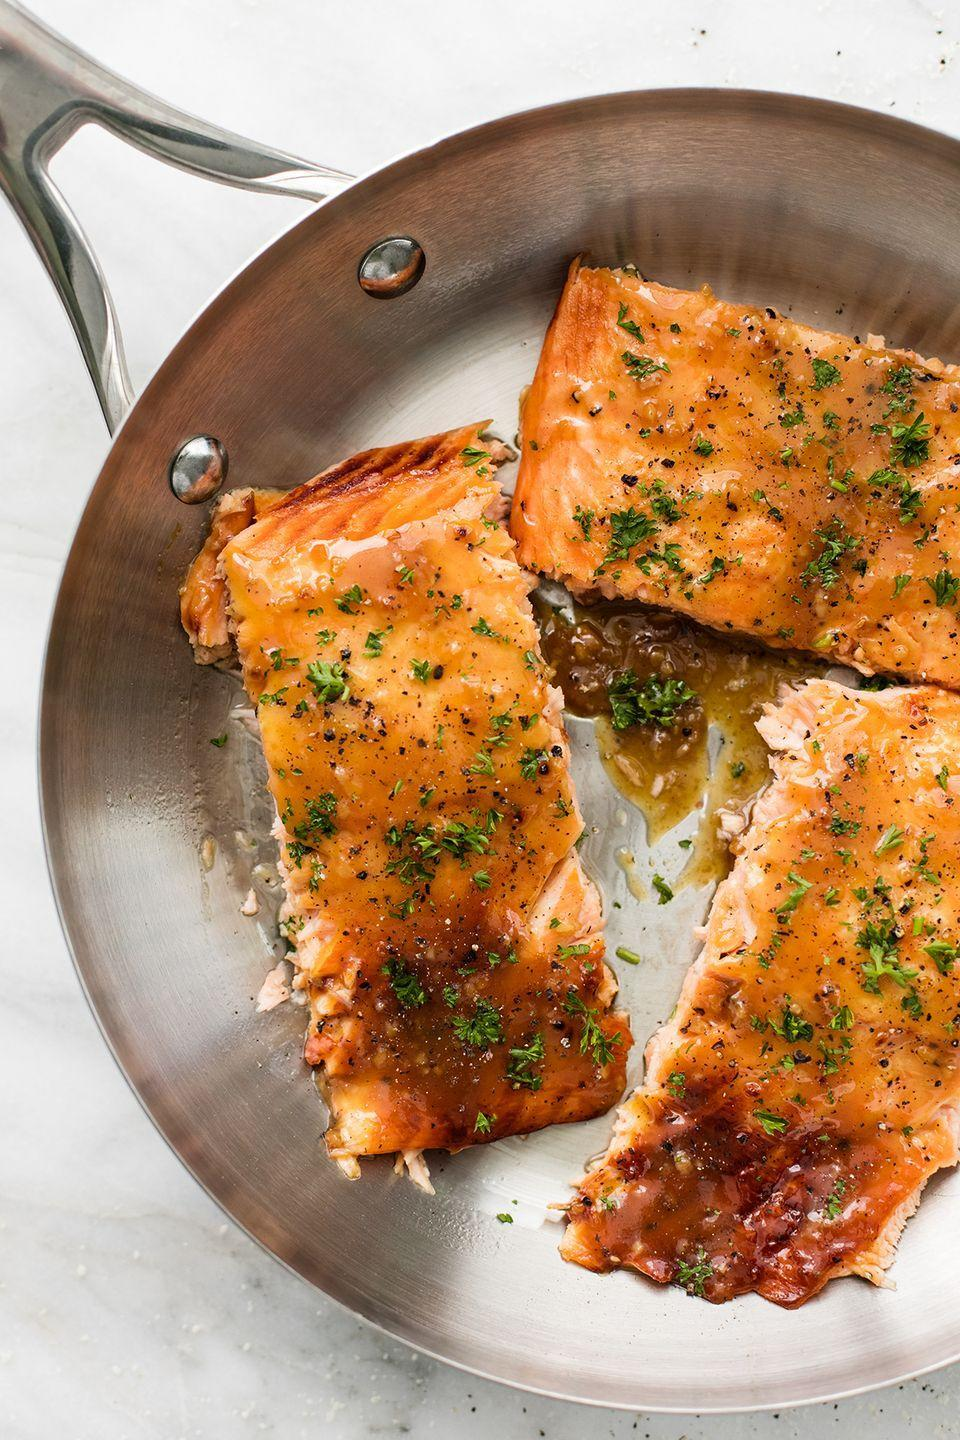 "<p>On the table in ten minutes or less.</p><p>Get the recipe from <a href=""https://www.delish.com/cooking/recipe-ideas/recipes/a52930/maple-dijon-salmon-recipe/"" rel=""nofollow noopener"" target=""_blank"" data-ylk=""slk:Delish"" class=""link rapid-noclick-resp"">Delish</a>.</p>"